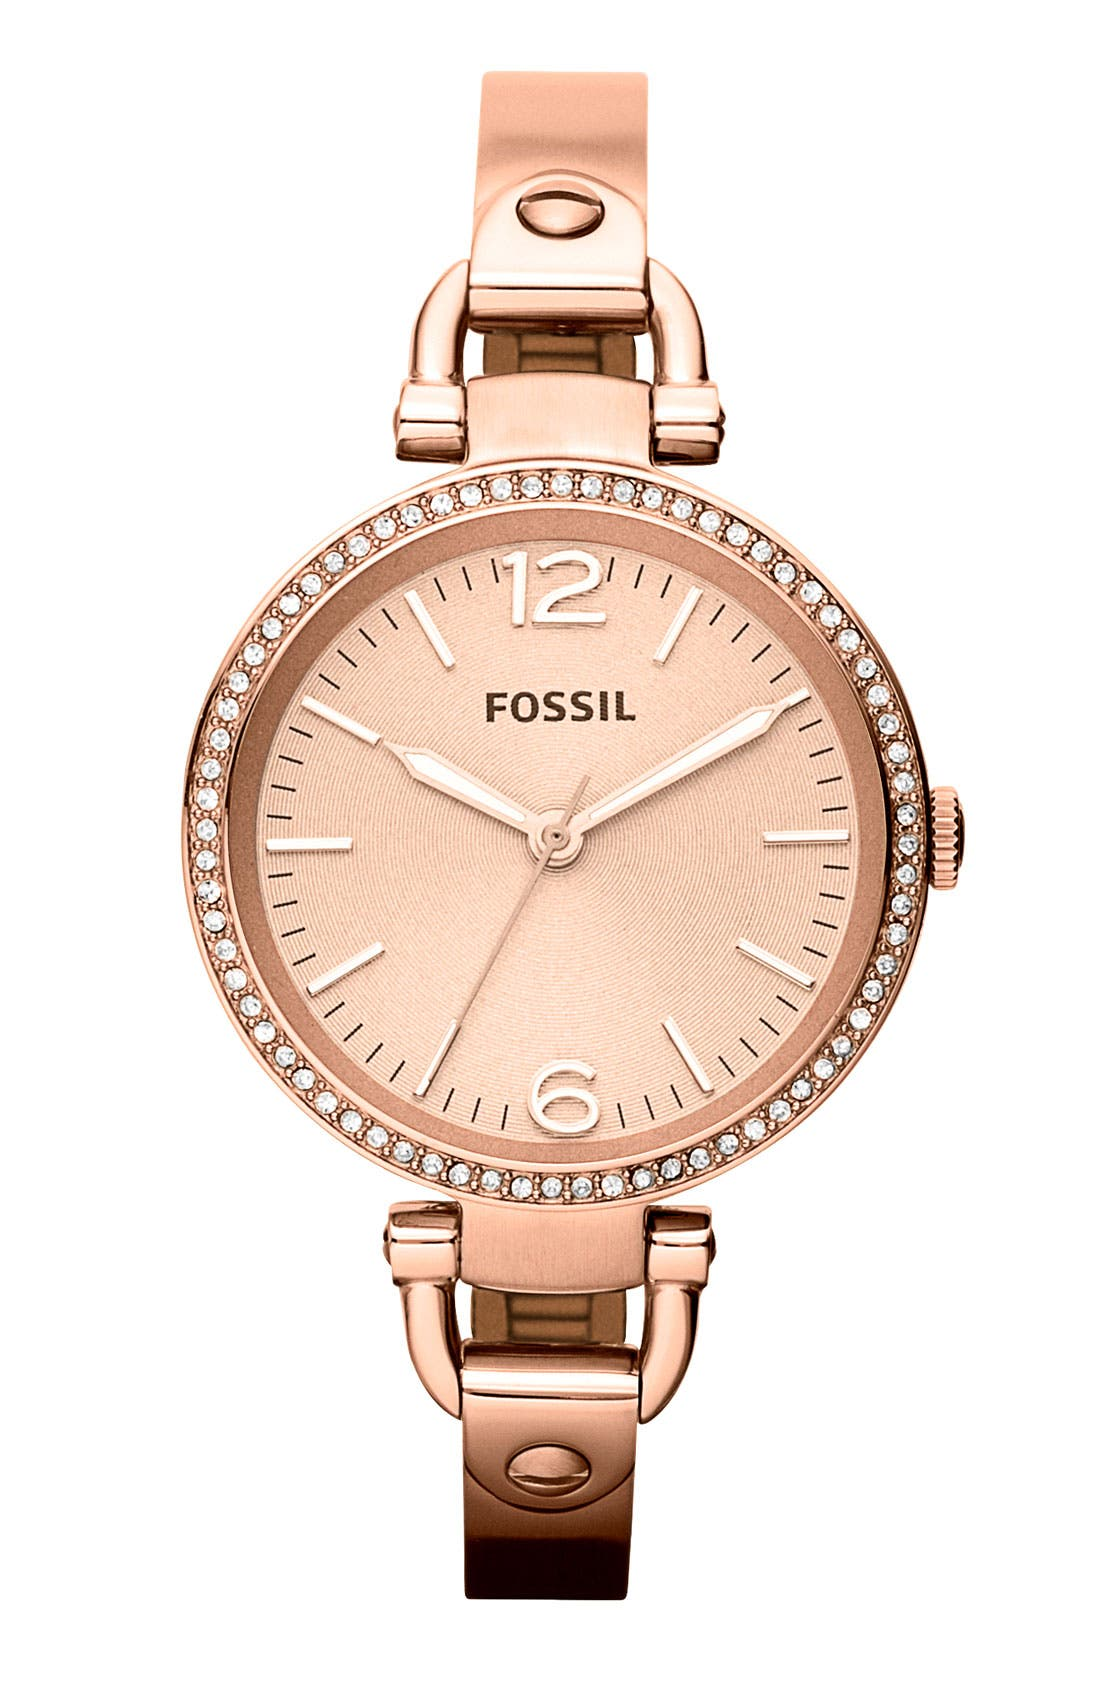 FOSSIL, 'Georgia' Crystal Bezel Watch, 32mm, Main thumbnail 1, color, ROSE GOLD